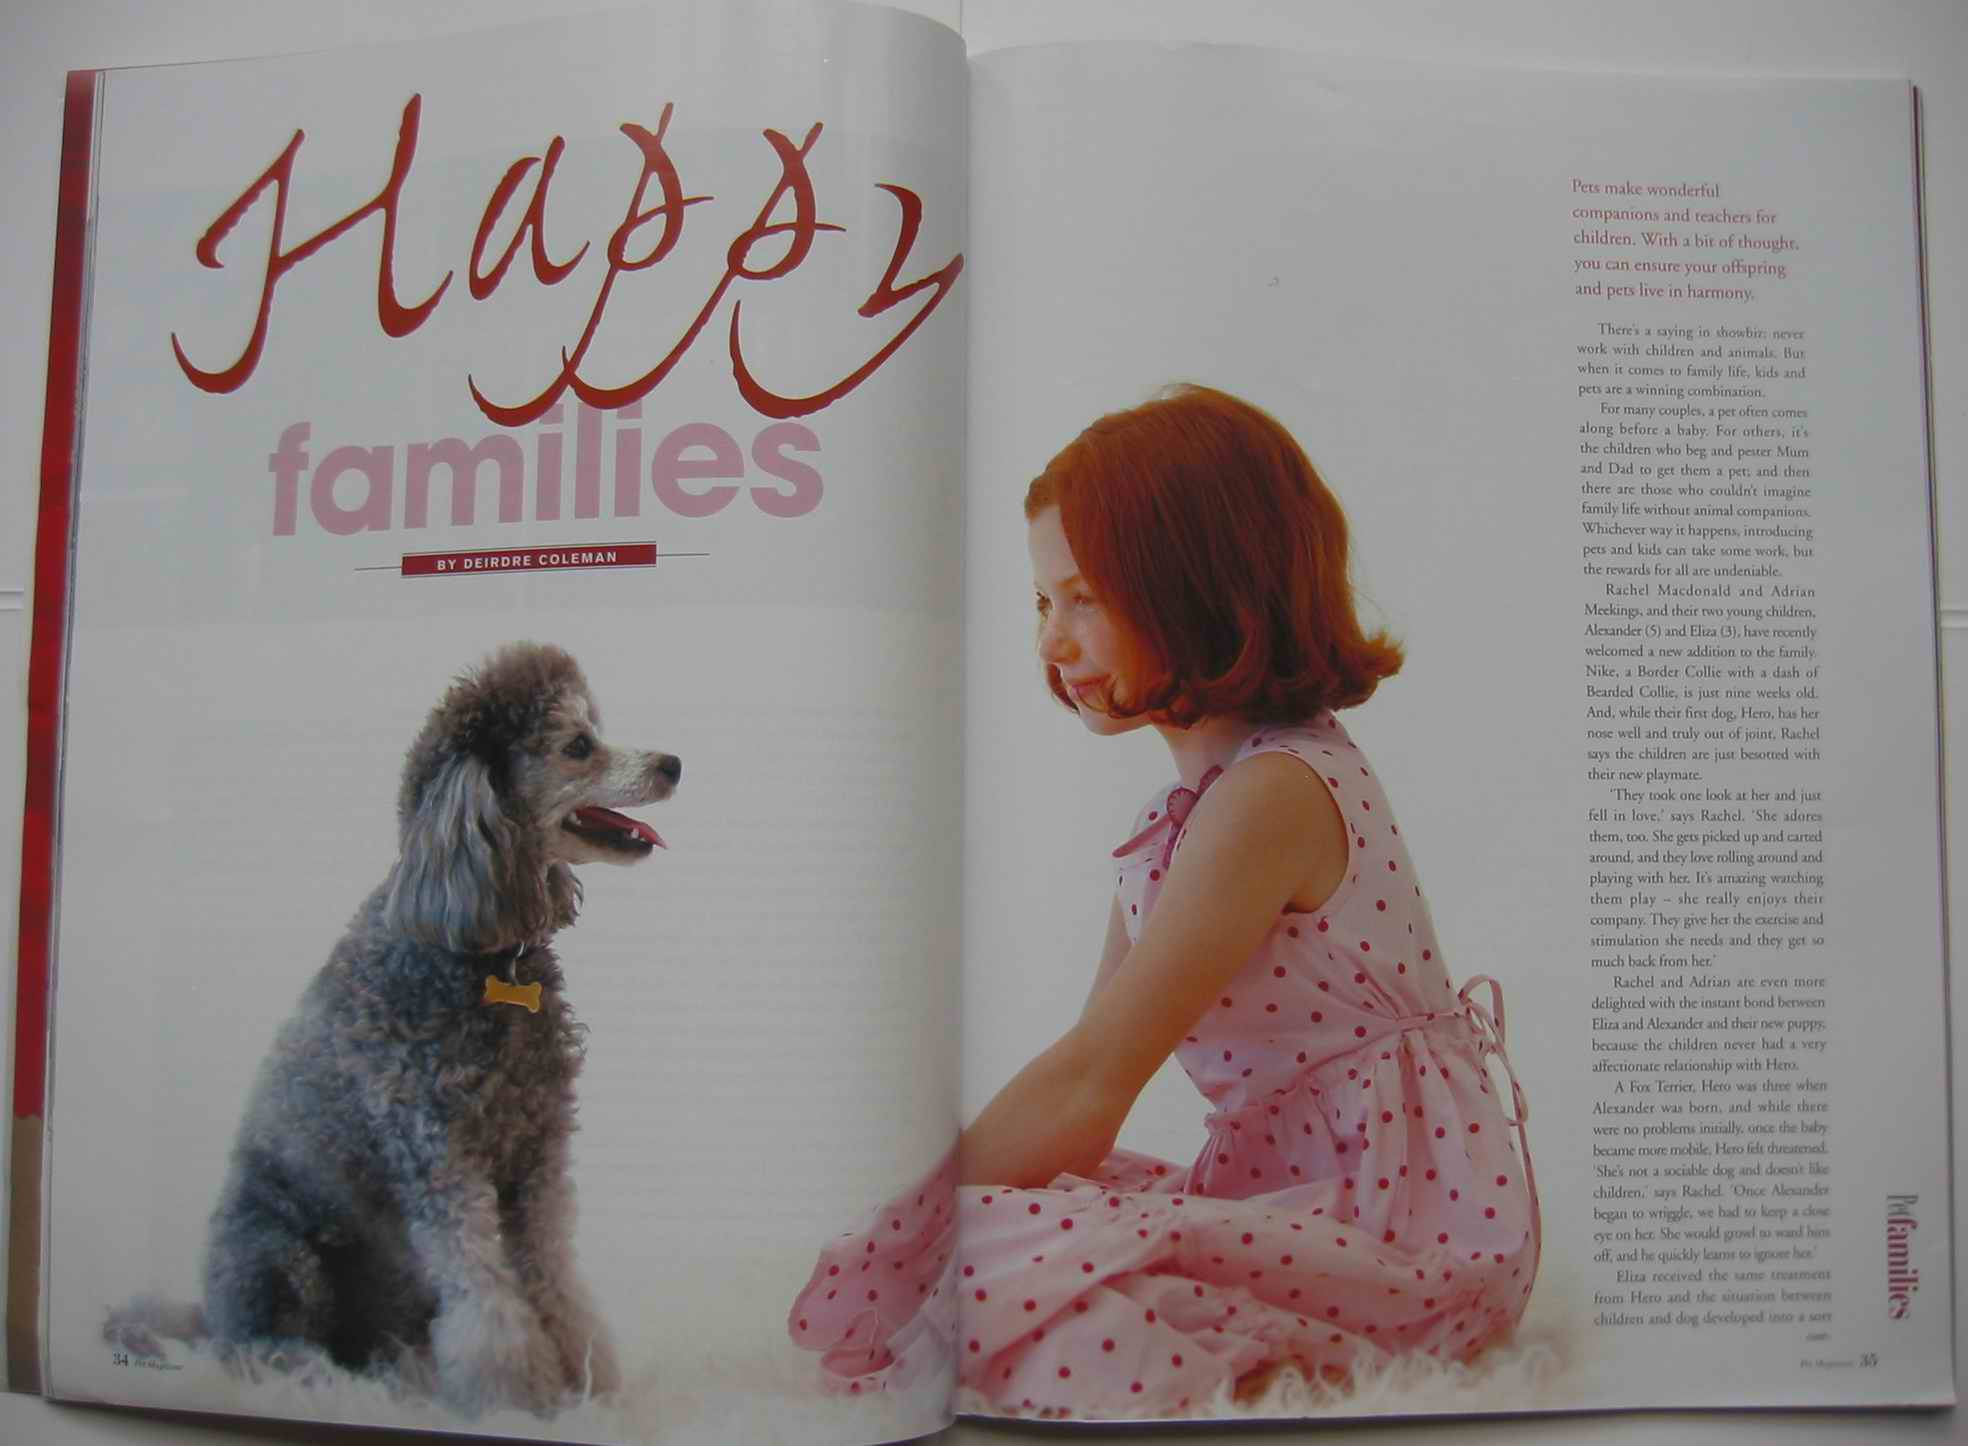 Pets and children feature